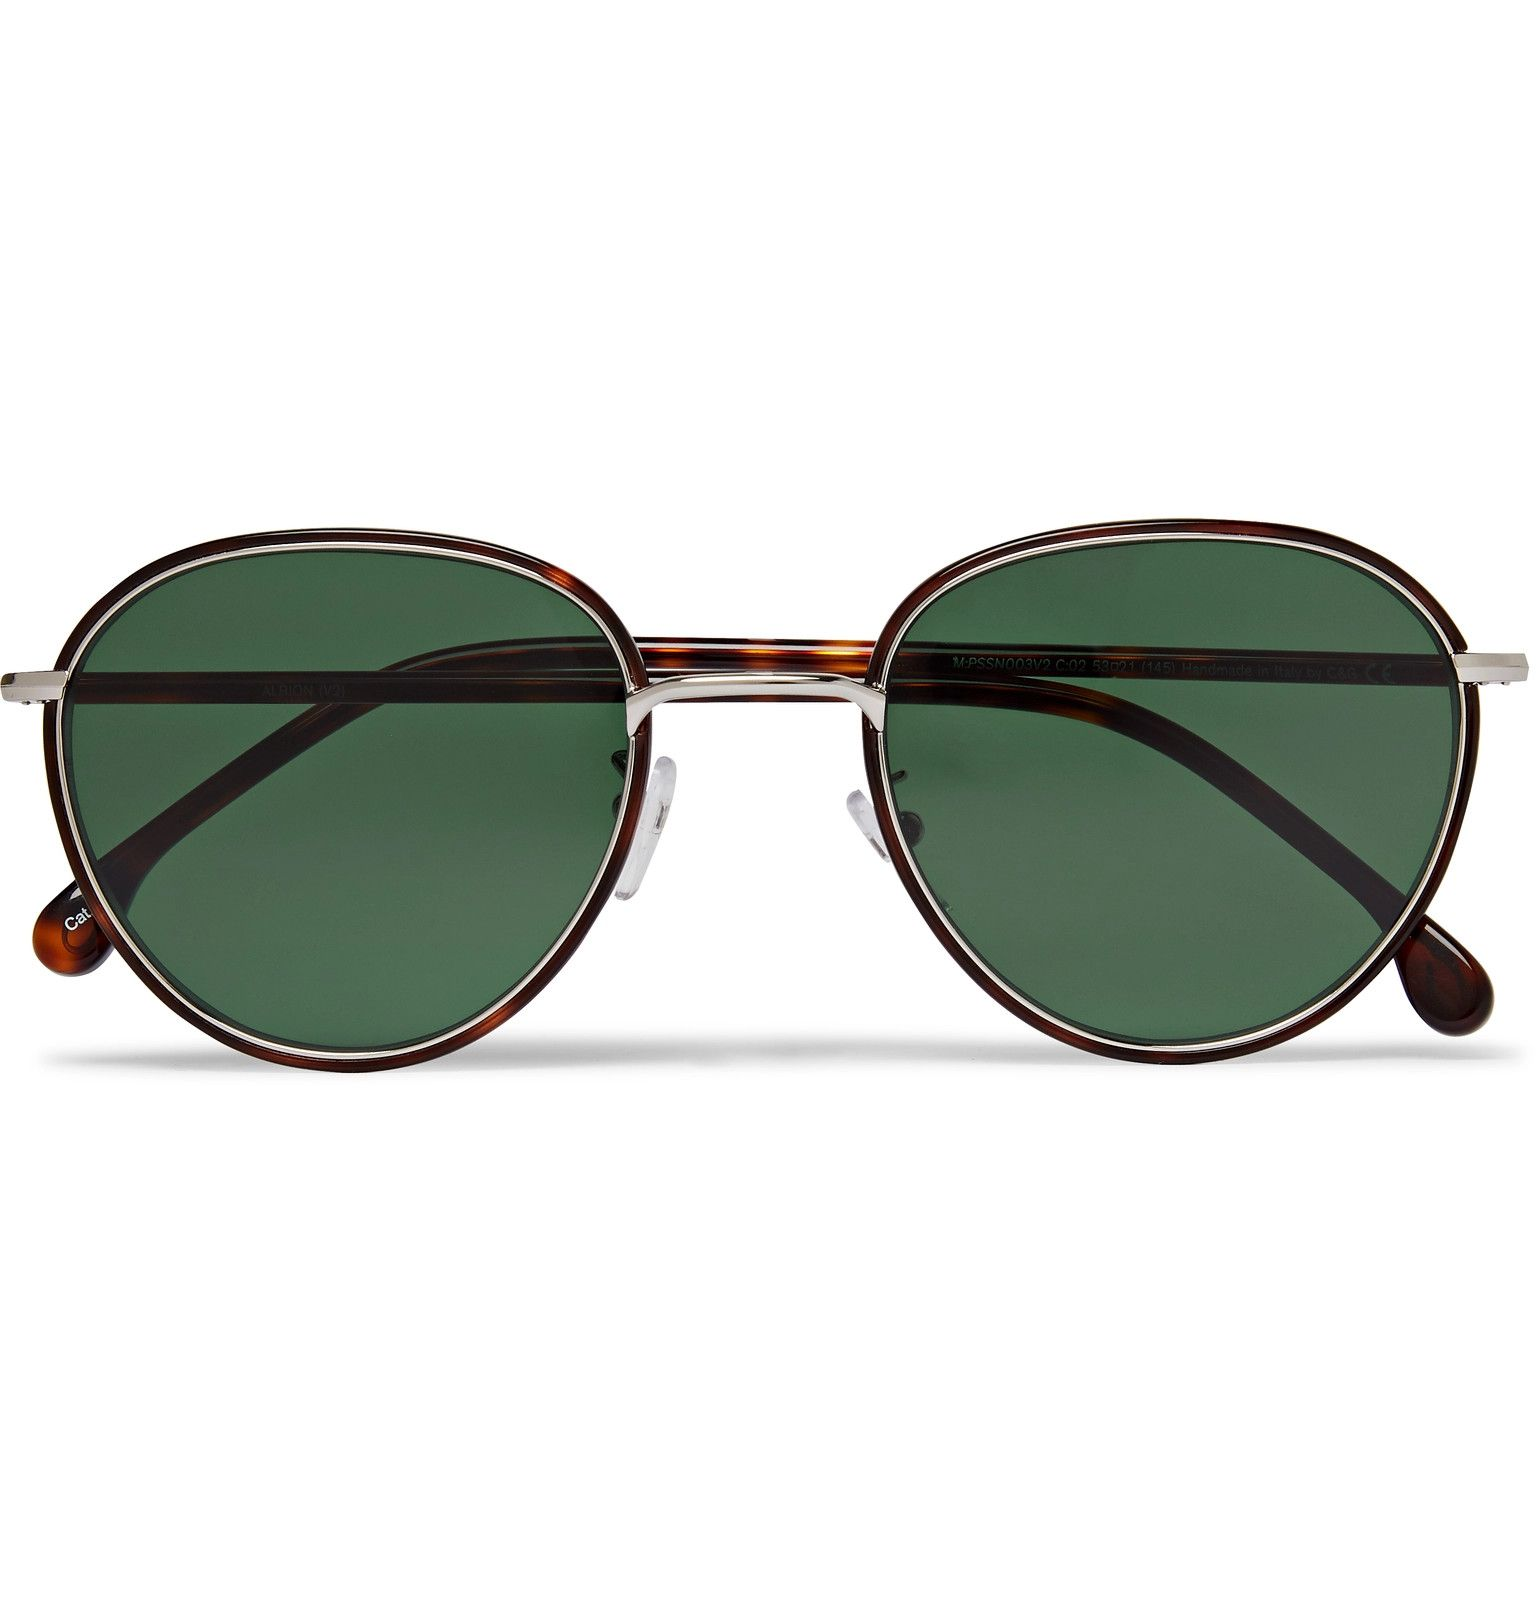 Paul Smith Albion Round Frame Tortoishell Acetate and